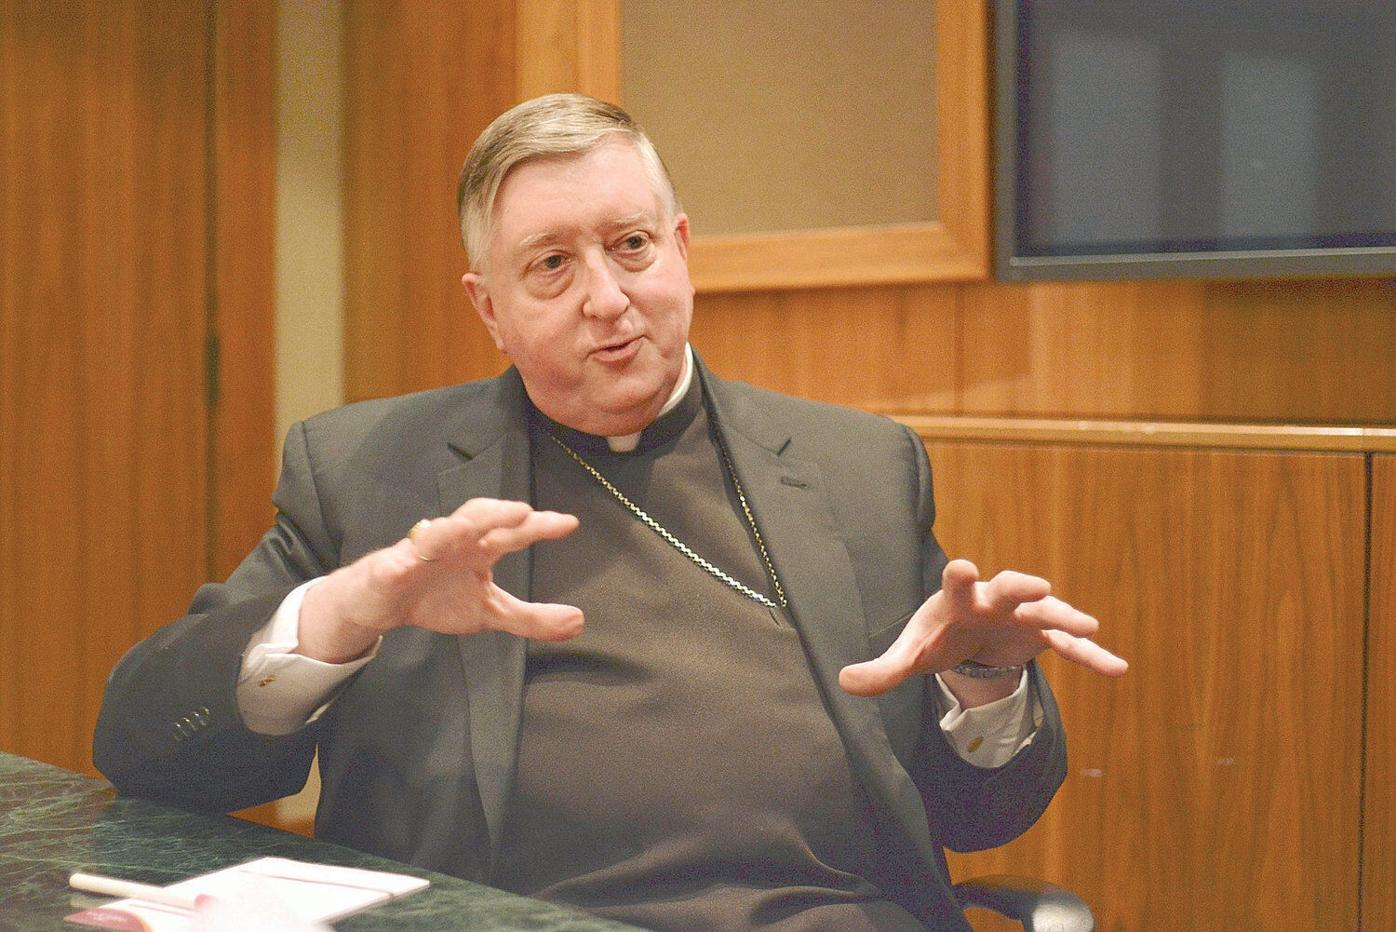 Our Opinion: Bishop made progress but didn't lead (copy)